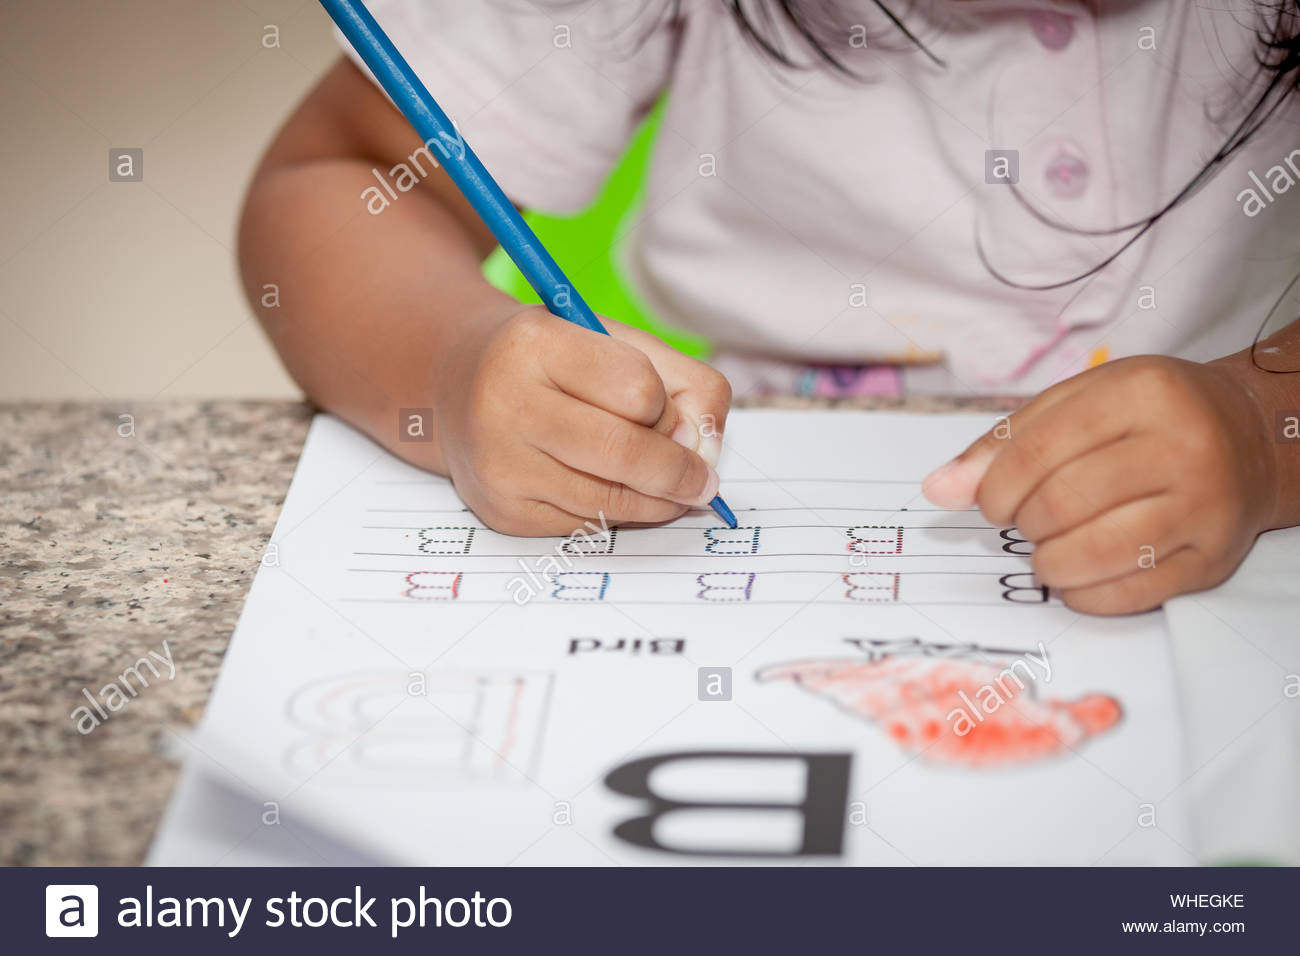 Child Tracing Hand Stock Photos & Child Tracing Hand Stock regarding Finger Tracing Letters